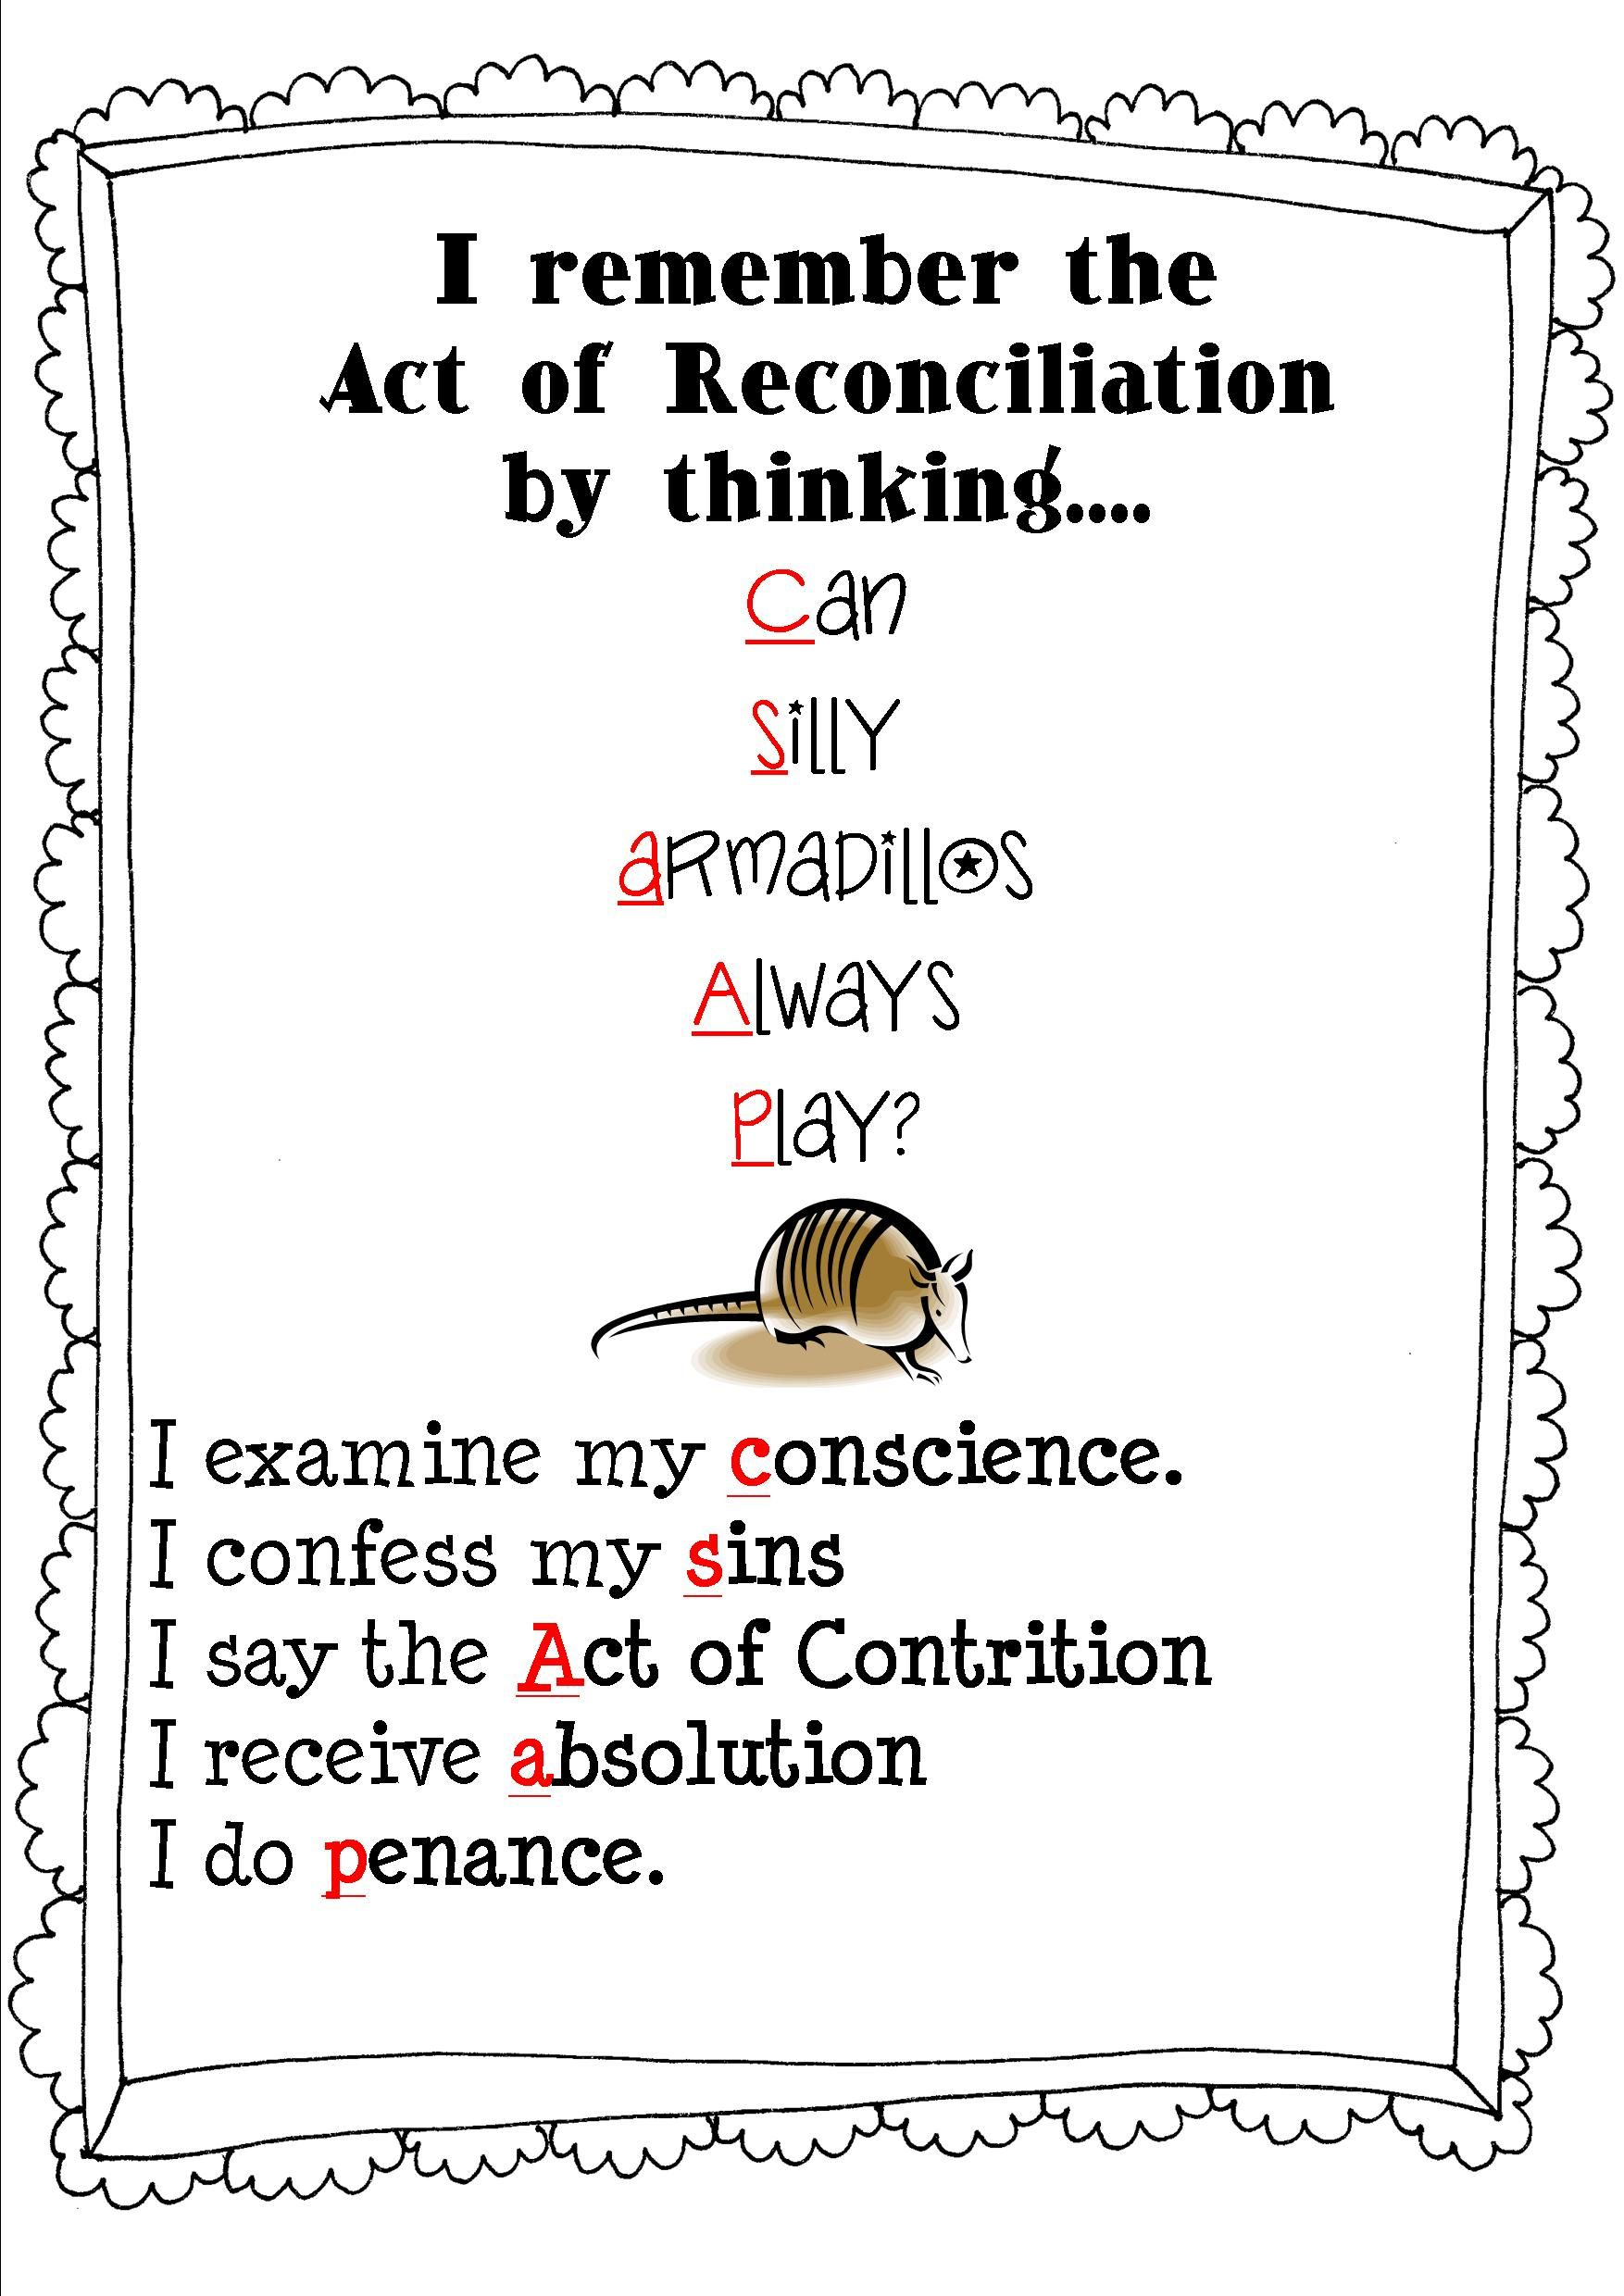 Reconciliation Rhyme For More Fun Activities Click The Link Below